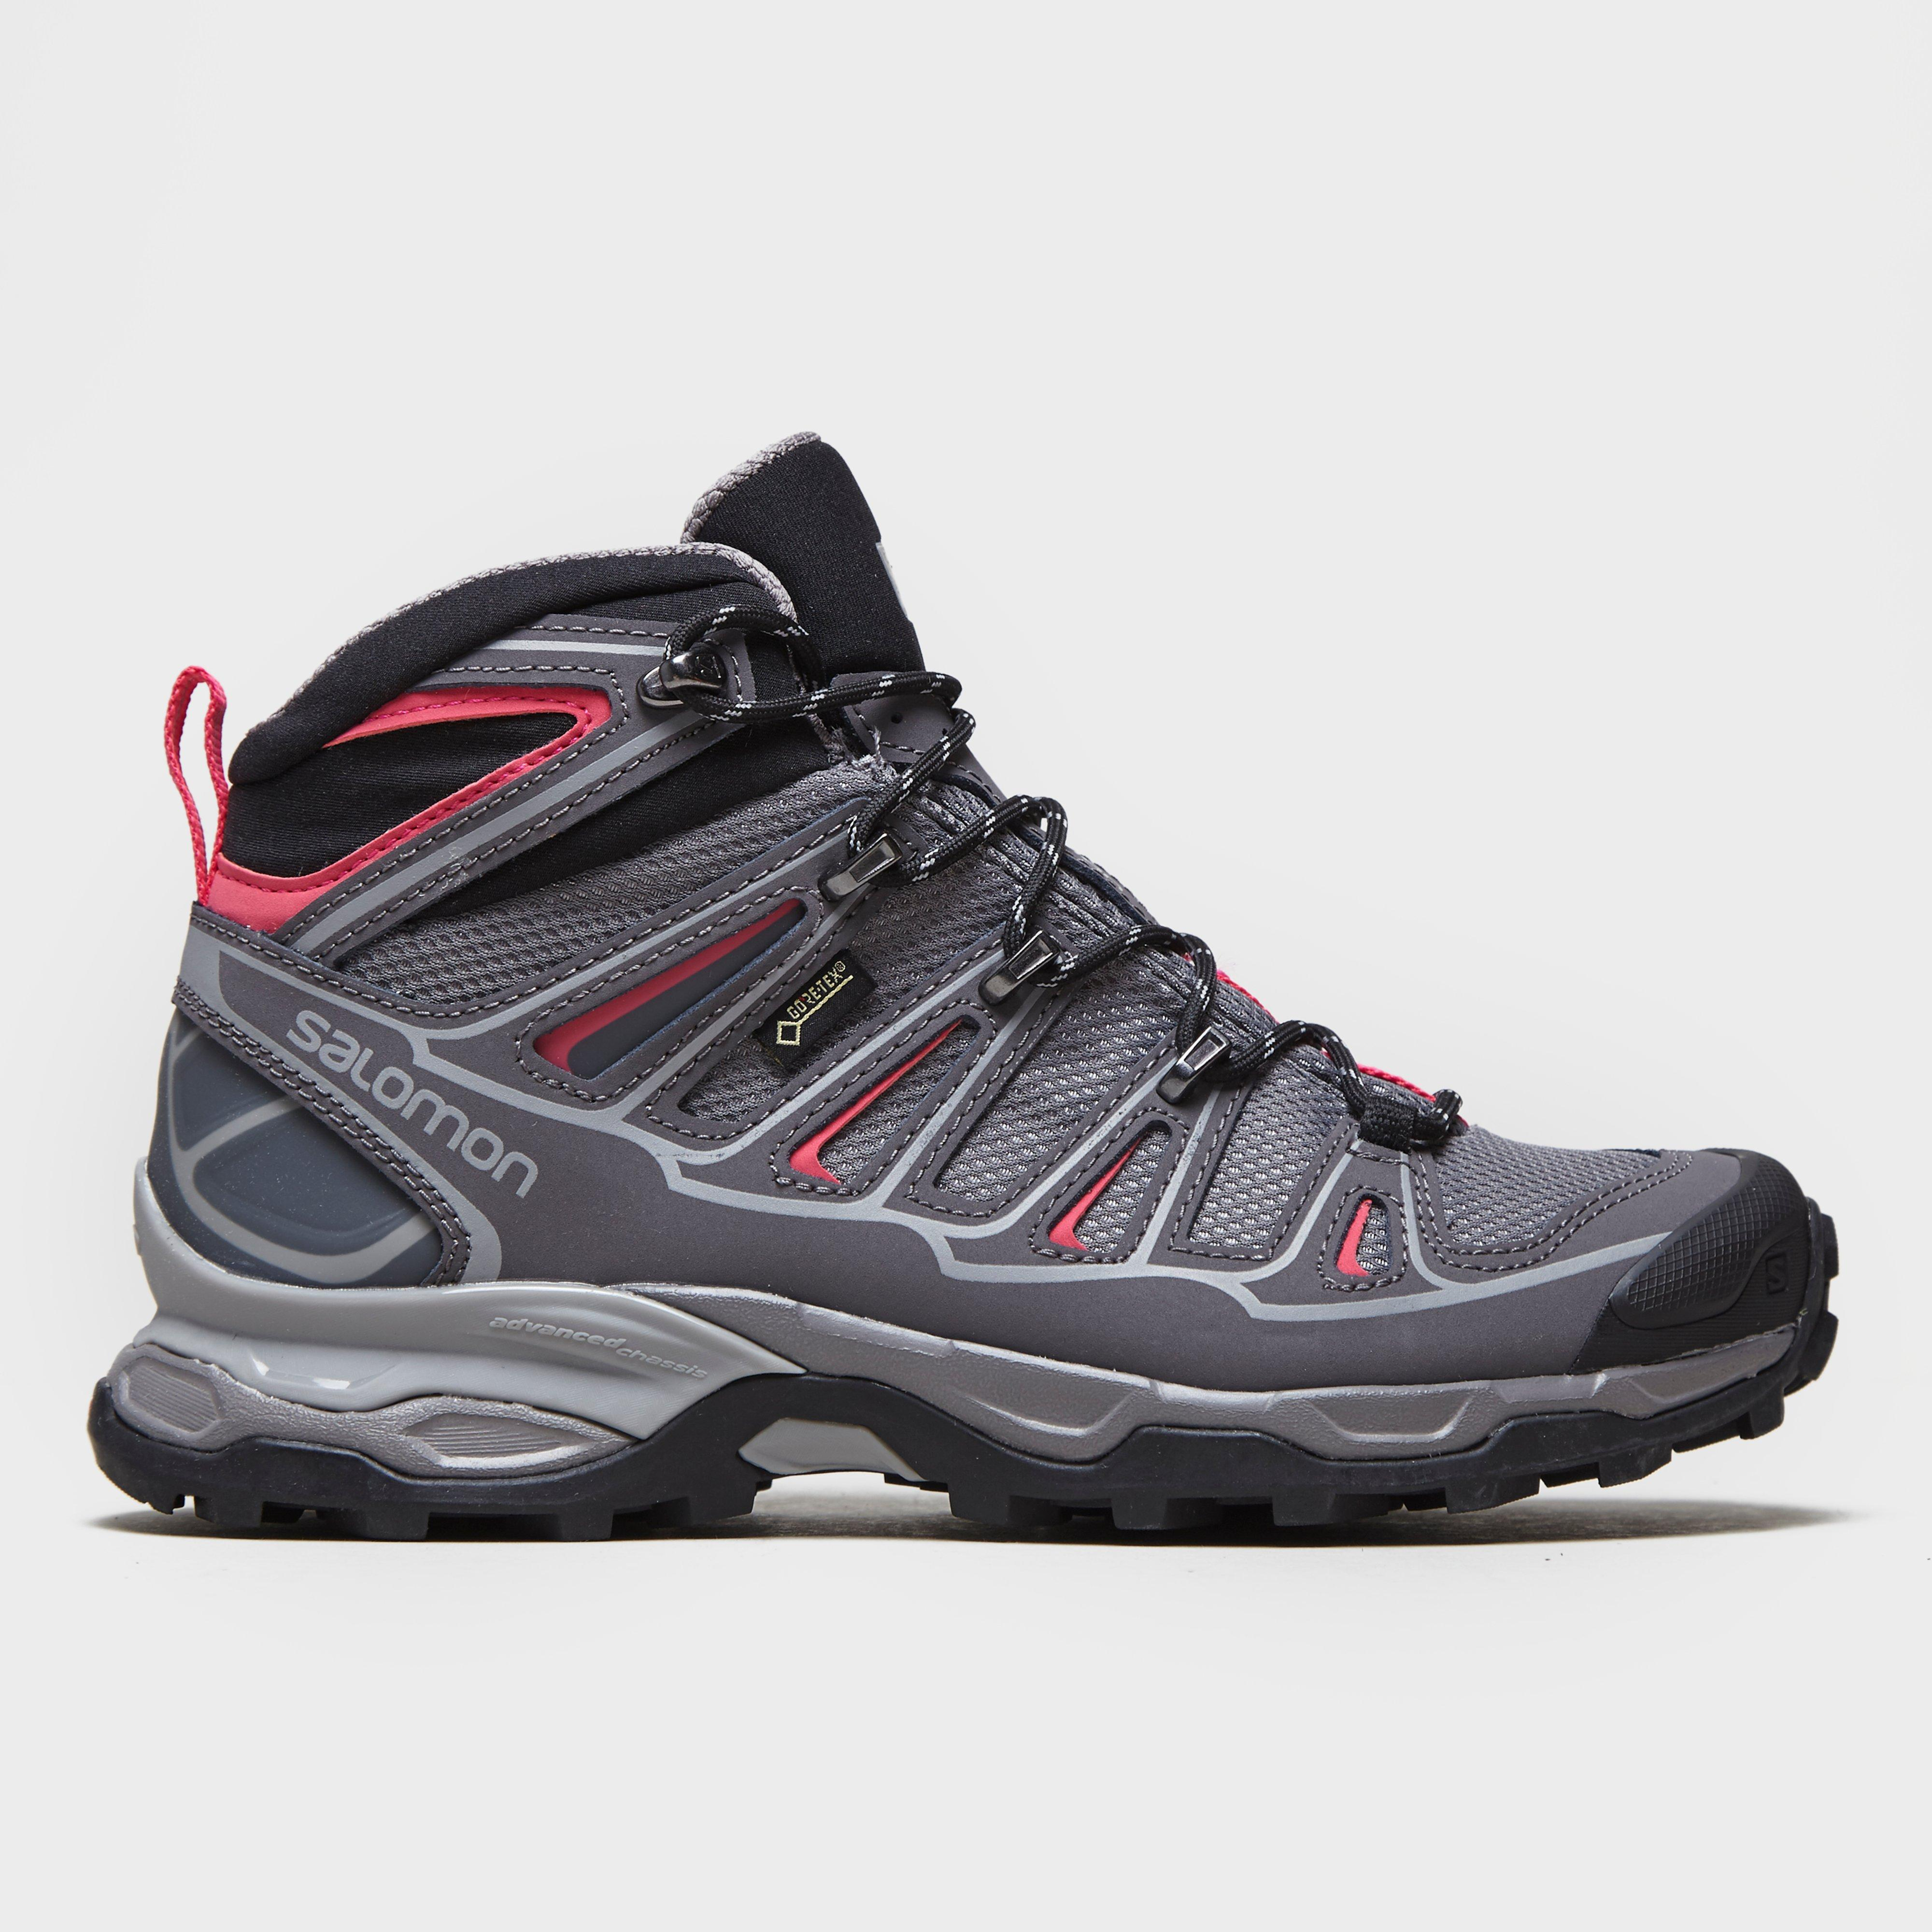 Excellent Sports Direct Is The UKs Leading Sports Retailer And The Owner Of A Significant Number Of Internationally Recognised Sports And Leisure Brands Please Note That All Sizes On Our Listings Are Shown In UK Sizes Salomon Vandon Gore Tex